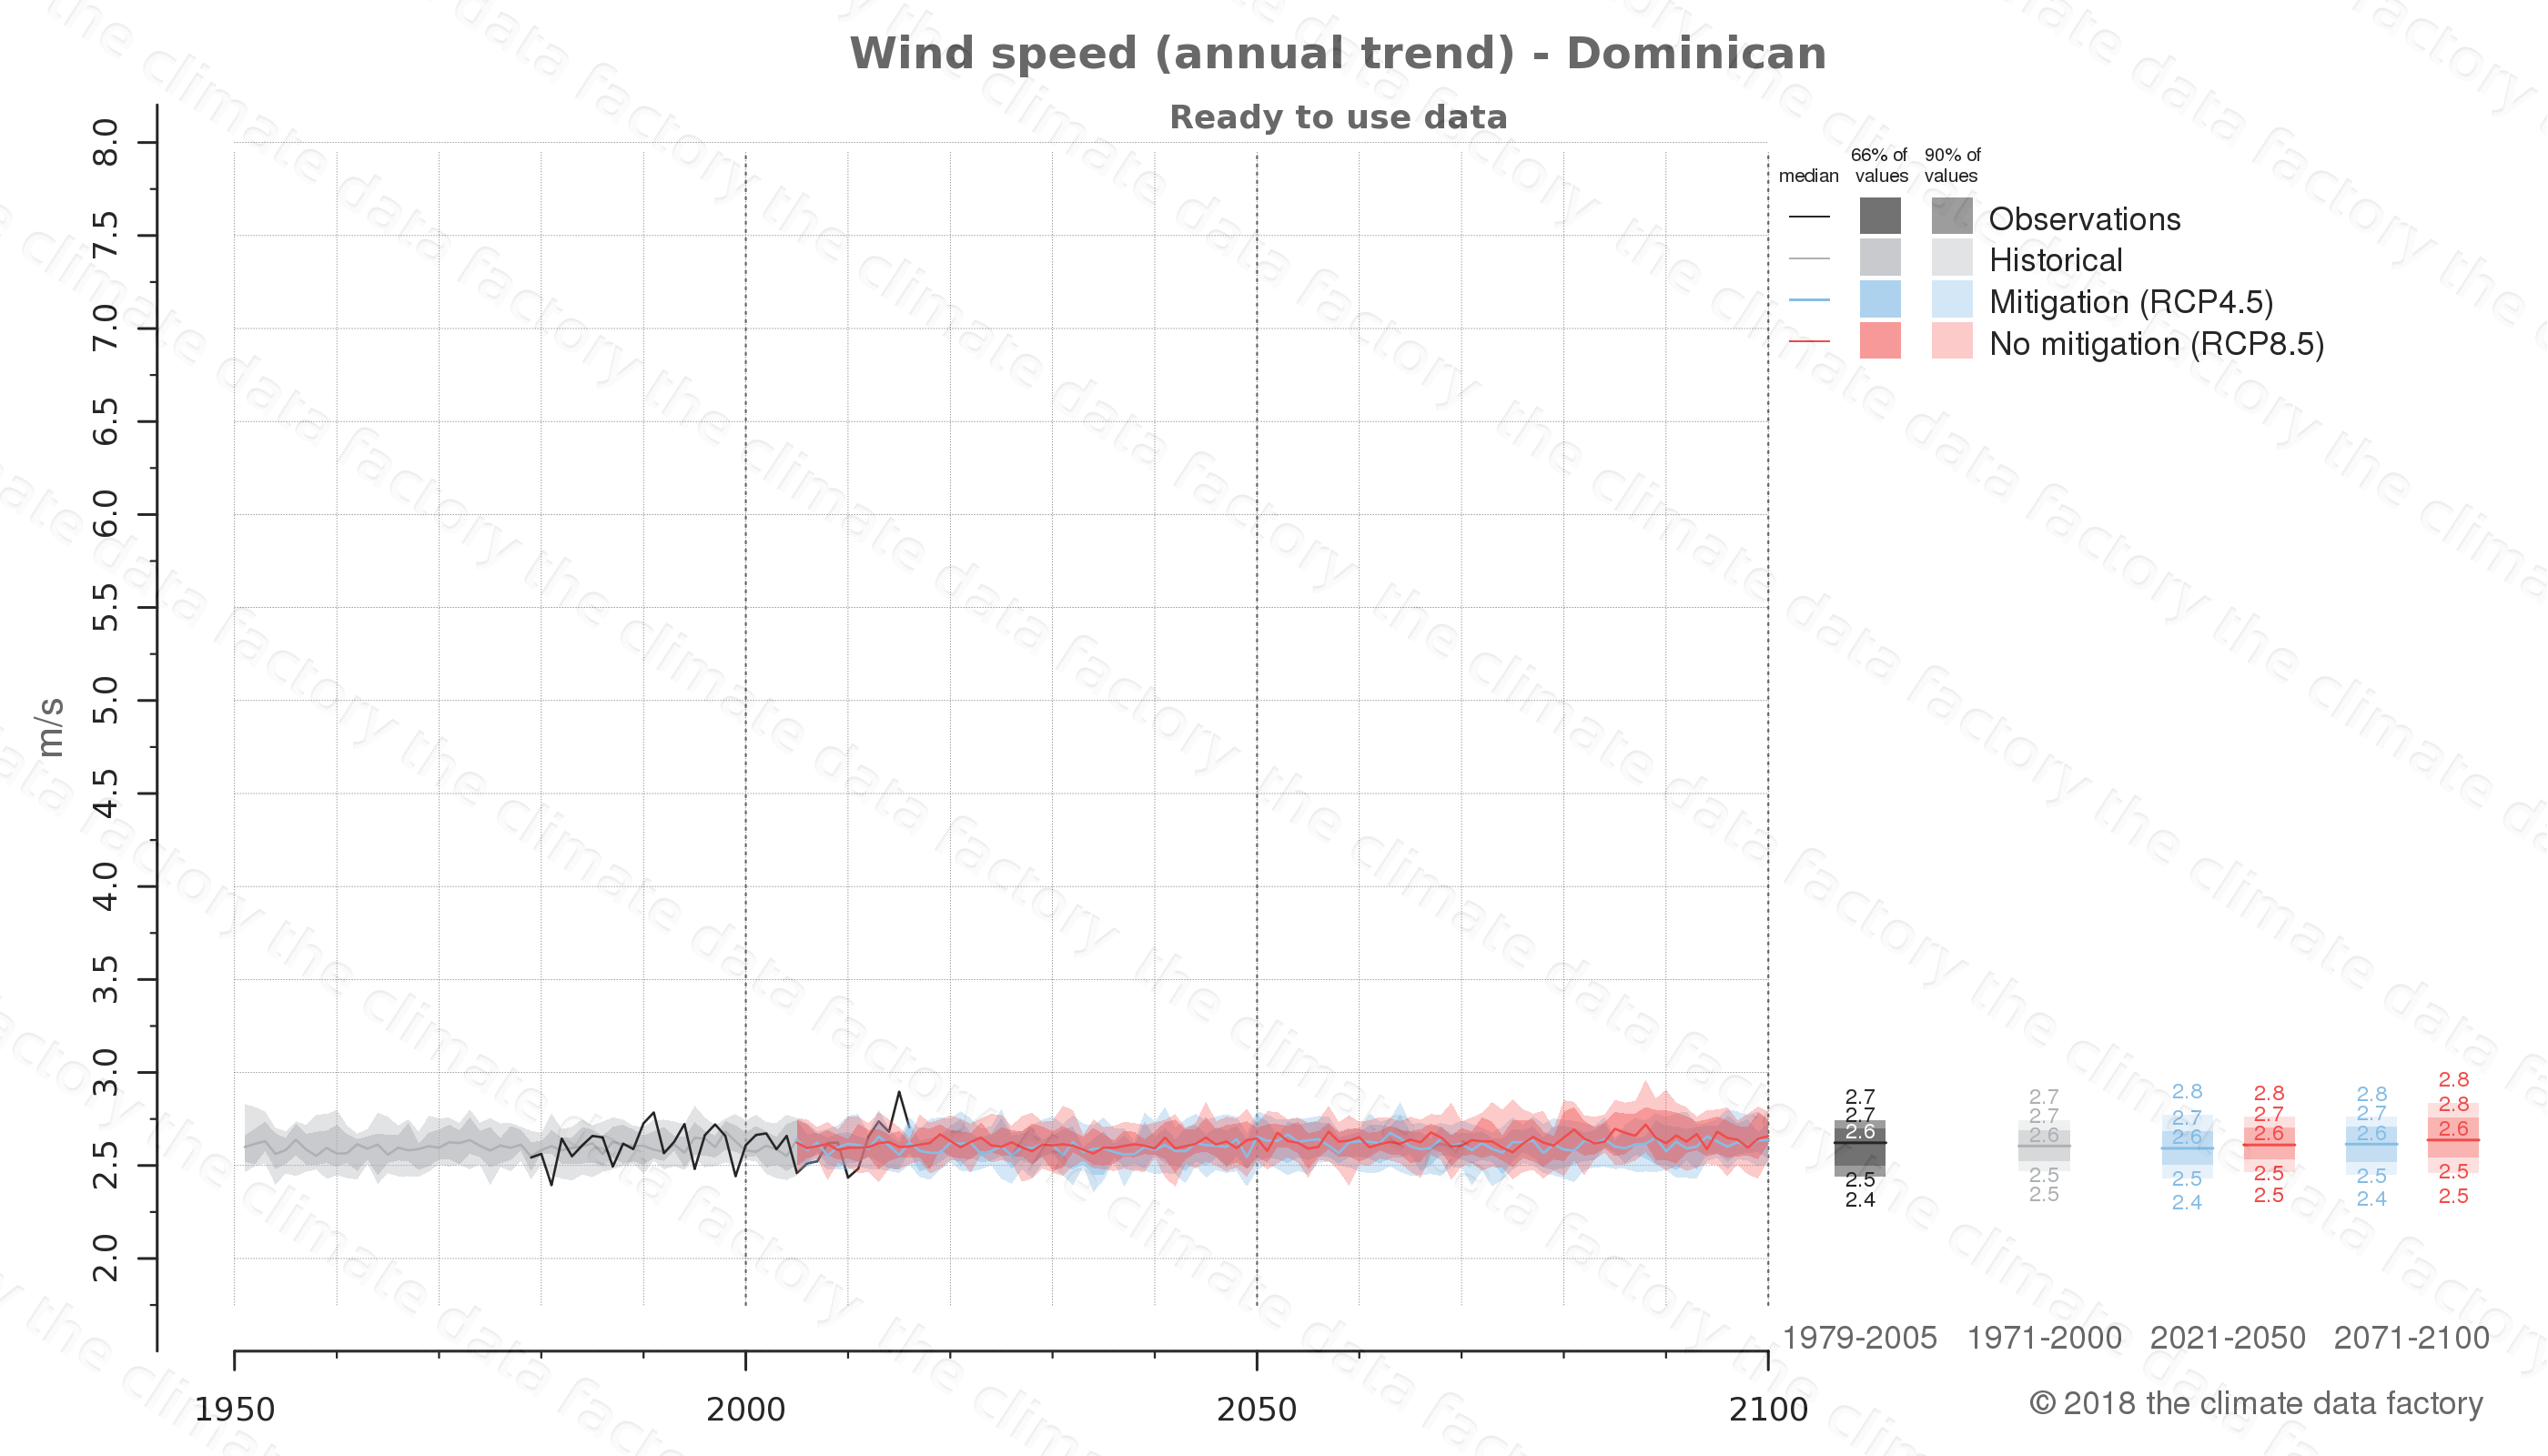 climate change data policy adaptation climate graph country data wind speed dominican republic central-america